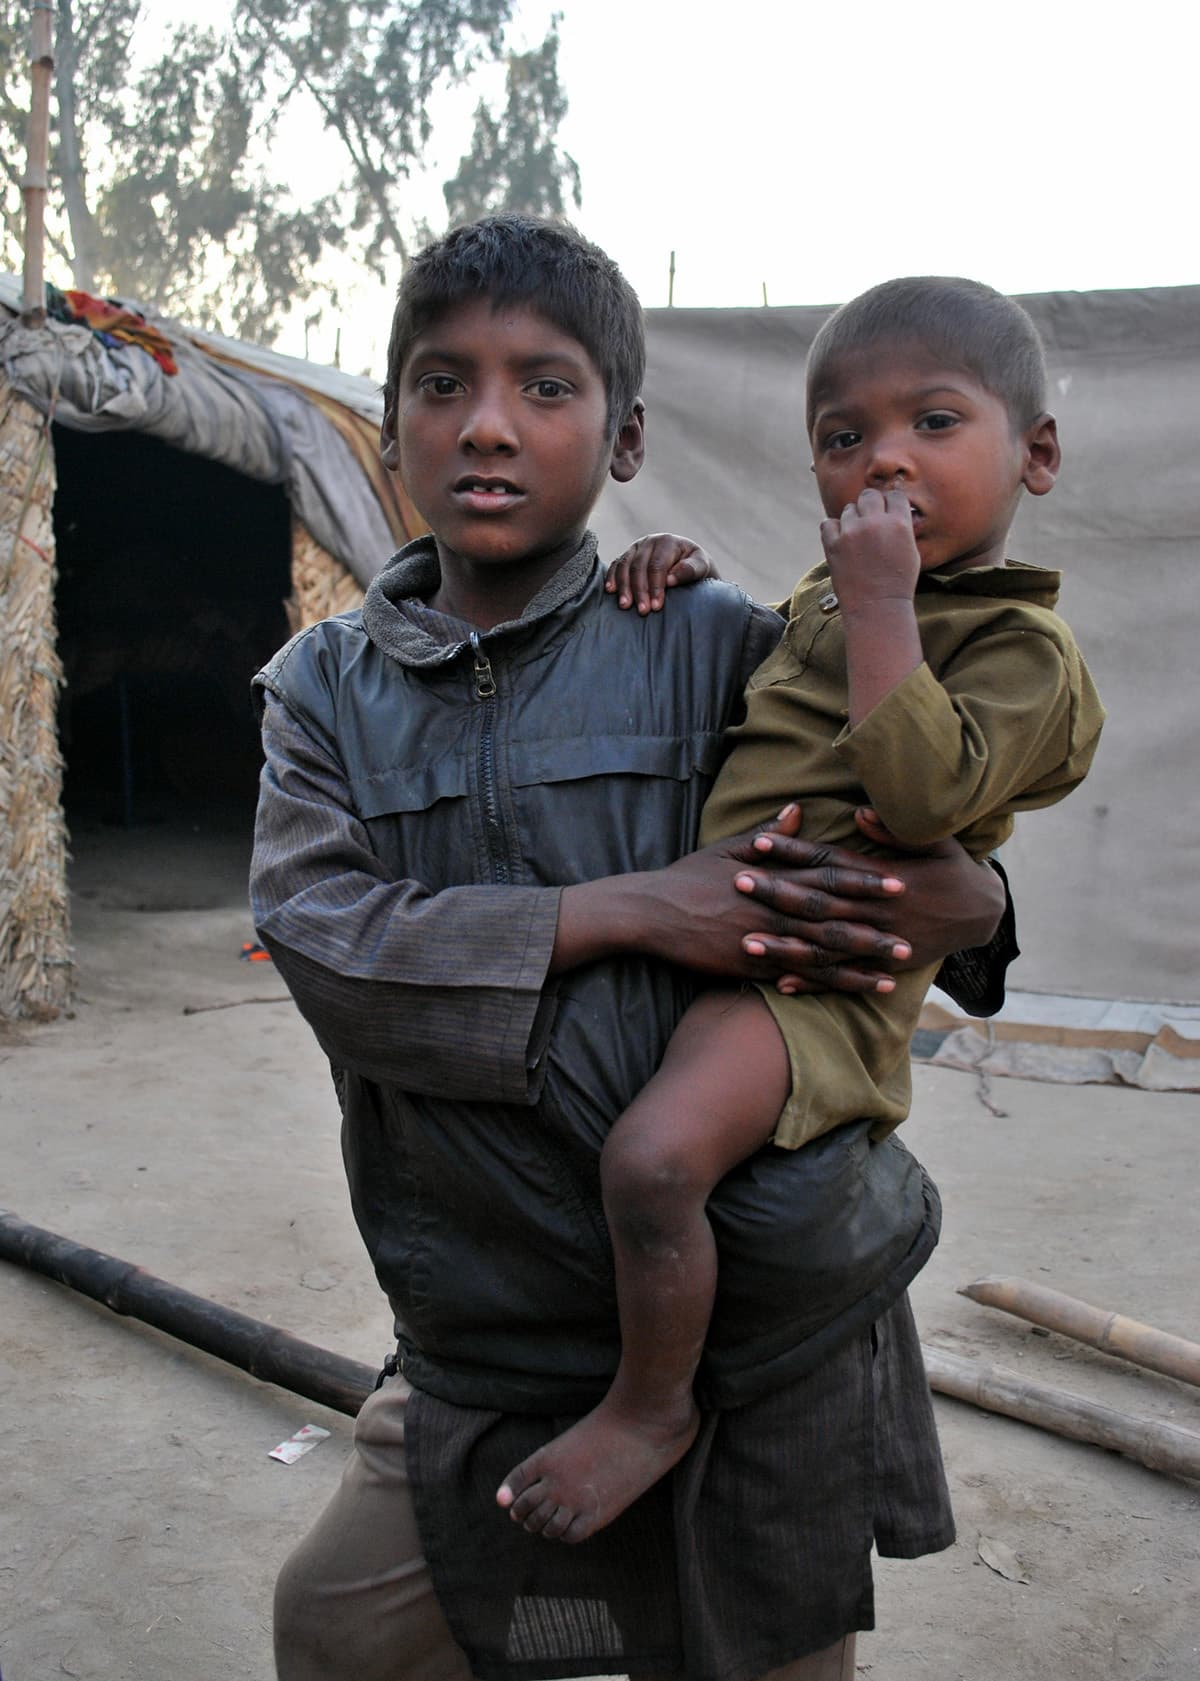 Asad, working as beggar, earns for his family, his father is worried that government's child protection department often detain the younger beggars and ask for bribes.